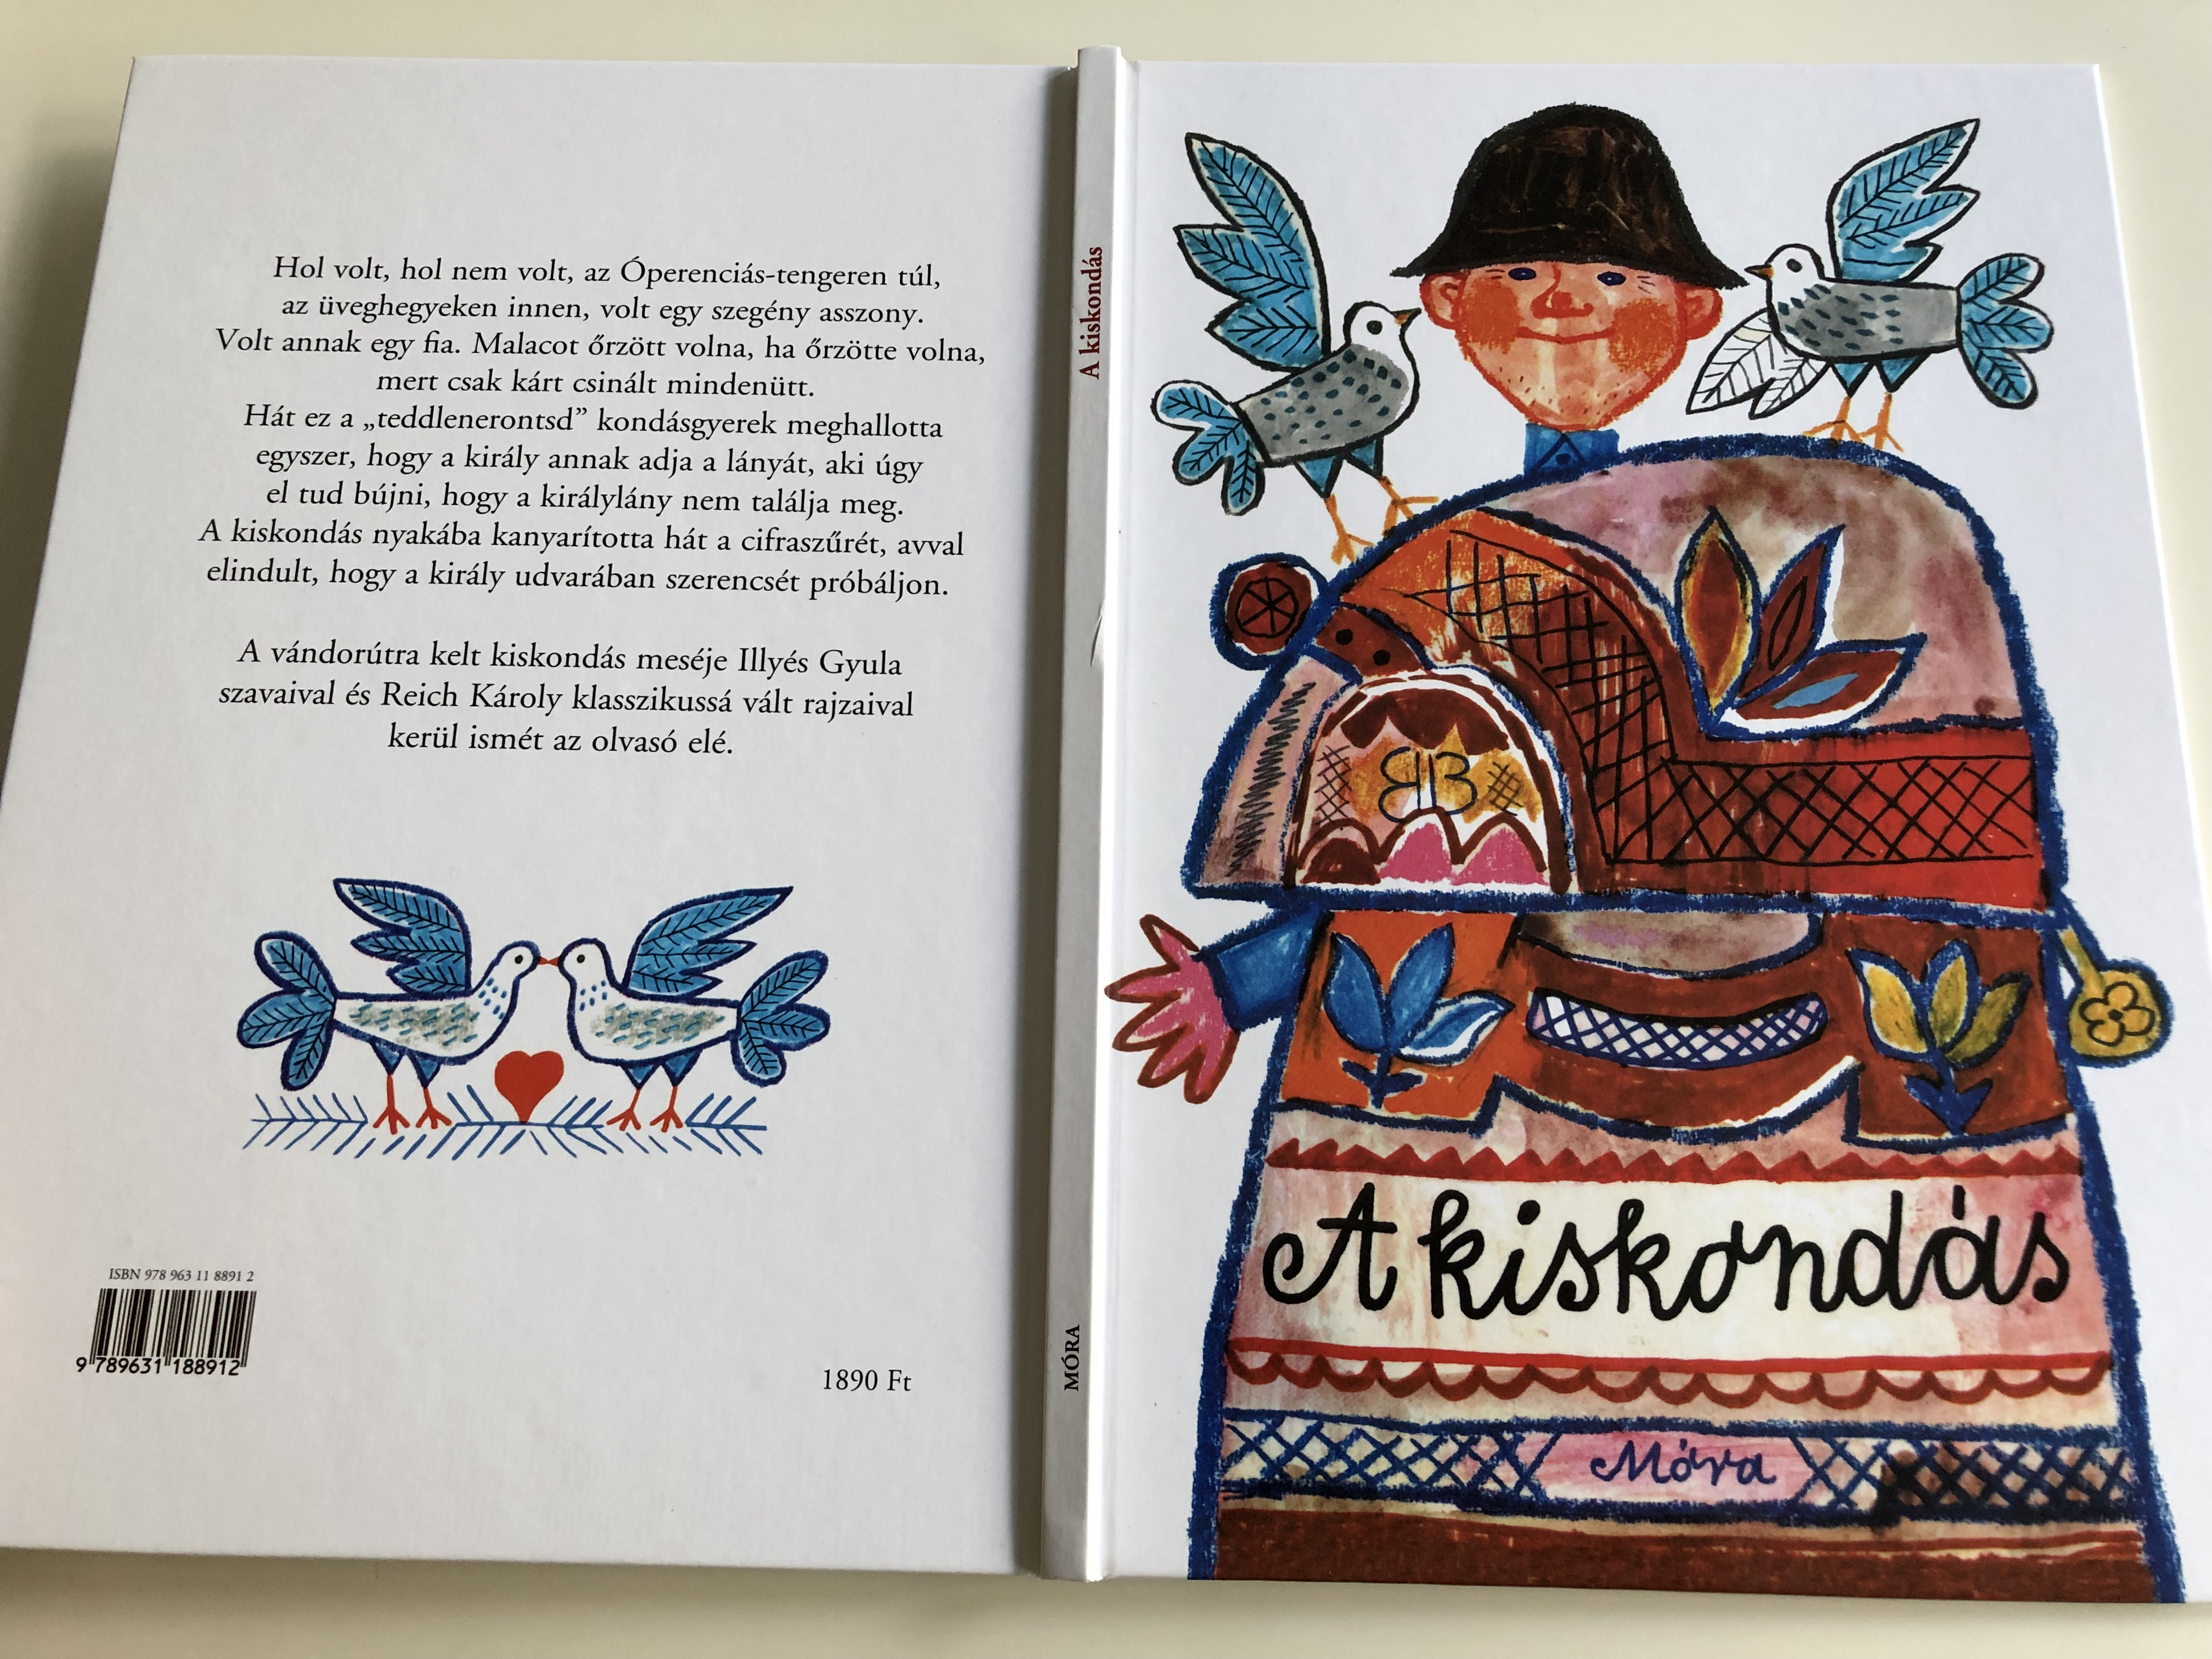 a-kiskond-s-by-illy-s-gyula-hungarian-folk-tale-for-children-illustrations-by-reich-k-roly-m-ra-k-nyvkiad-2011-9-.jpg